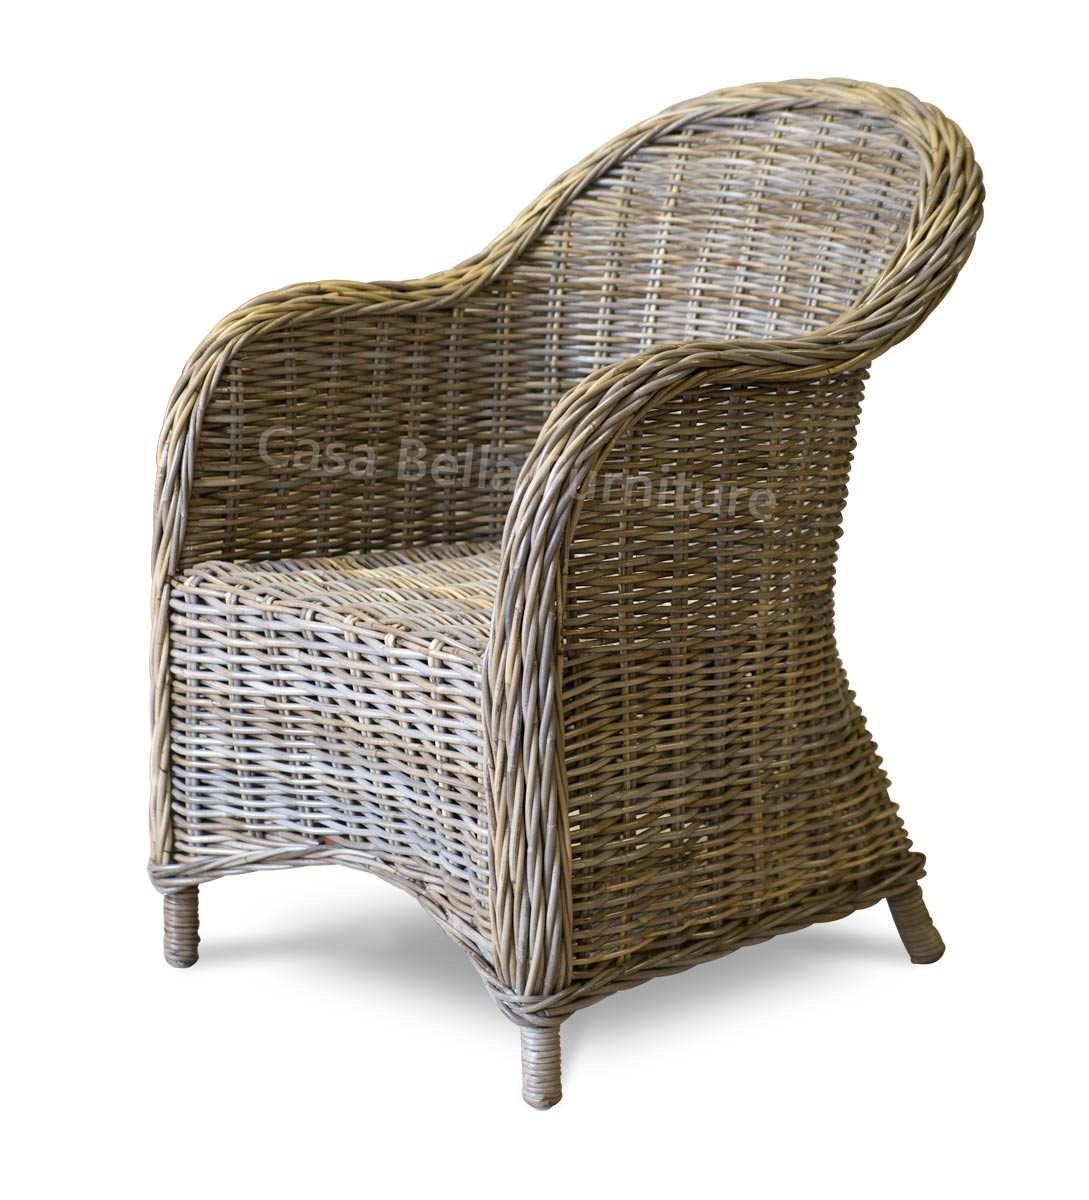 Kubu rattan armchair casa bella furniture uk for Armchair furniture